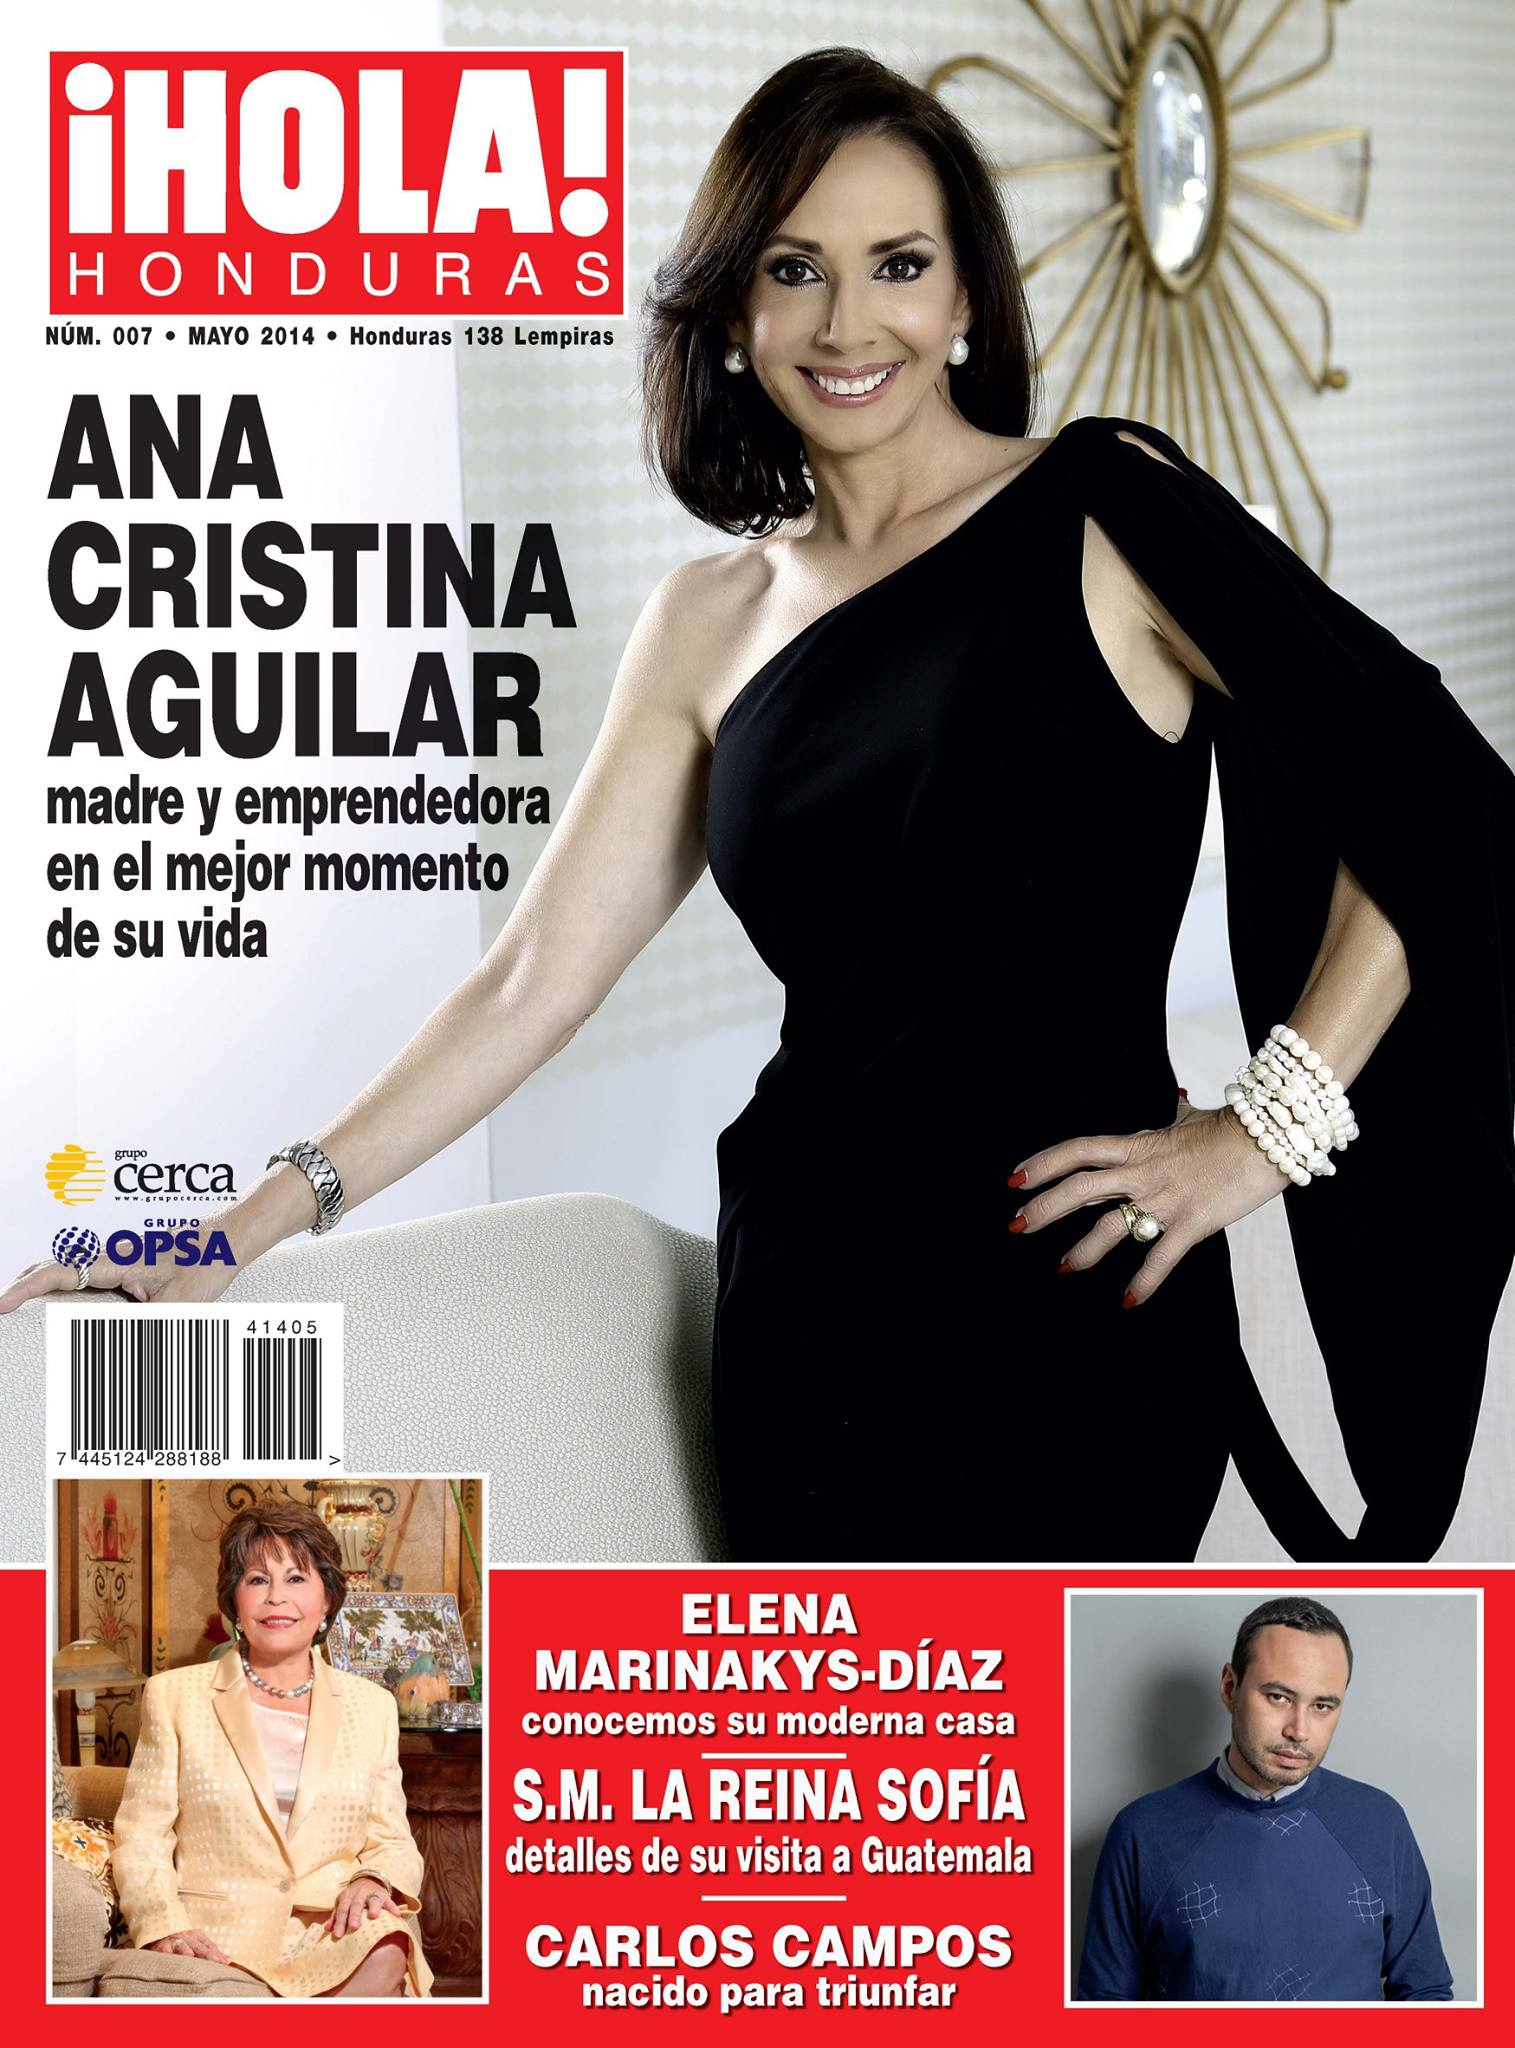 Ana Cristina Aguilar on the cover of Hola! Honduras